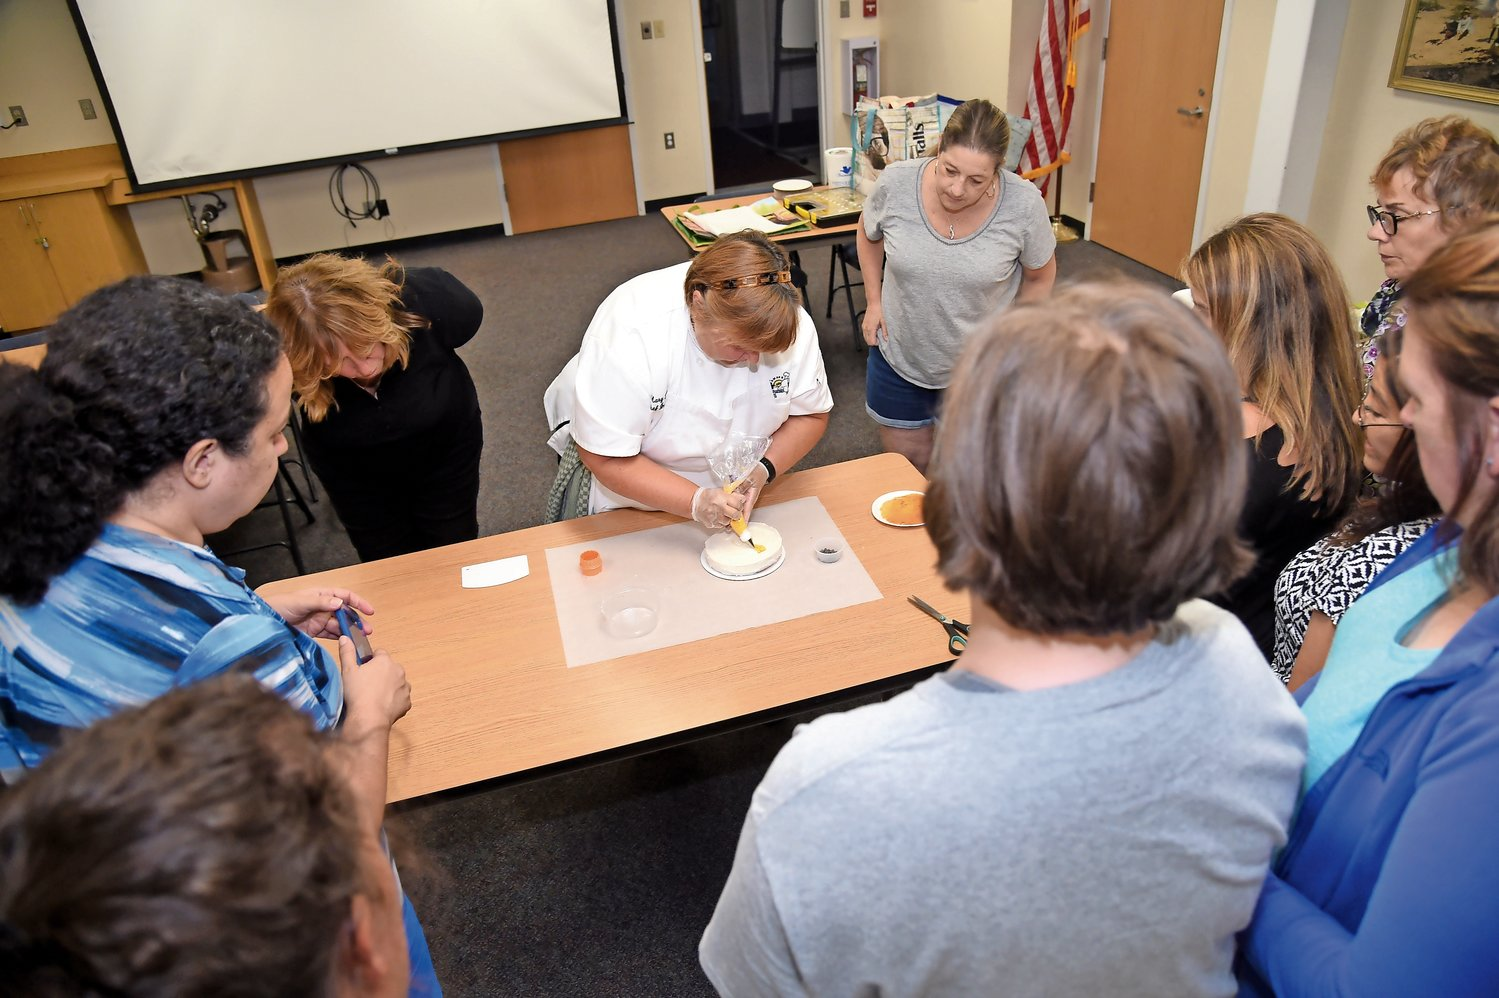 Chef Mary Sydor demonstrated cake decorating techniques at a class at the Franklin Square Public Library on Aug. 15.